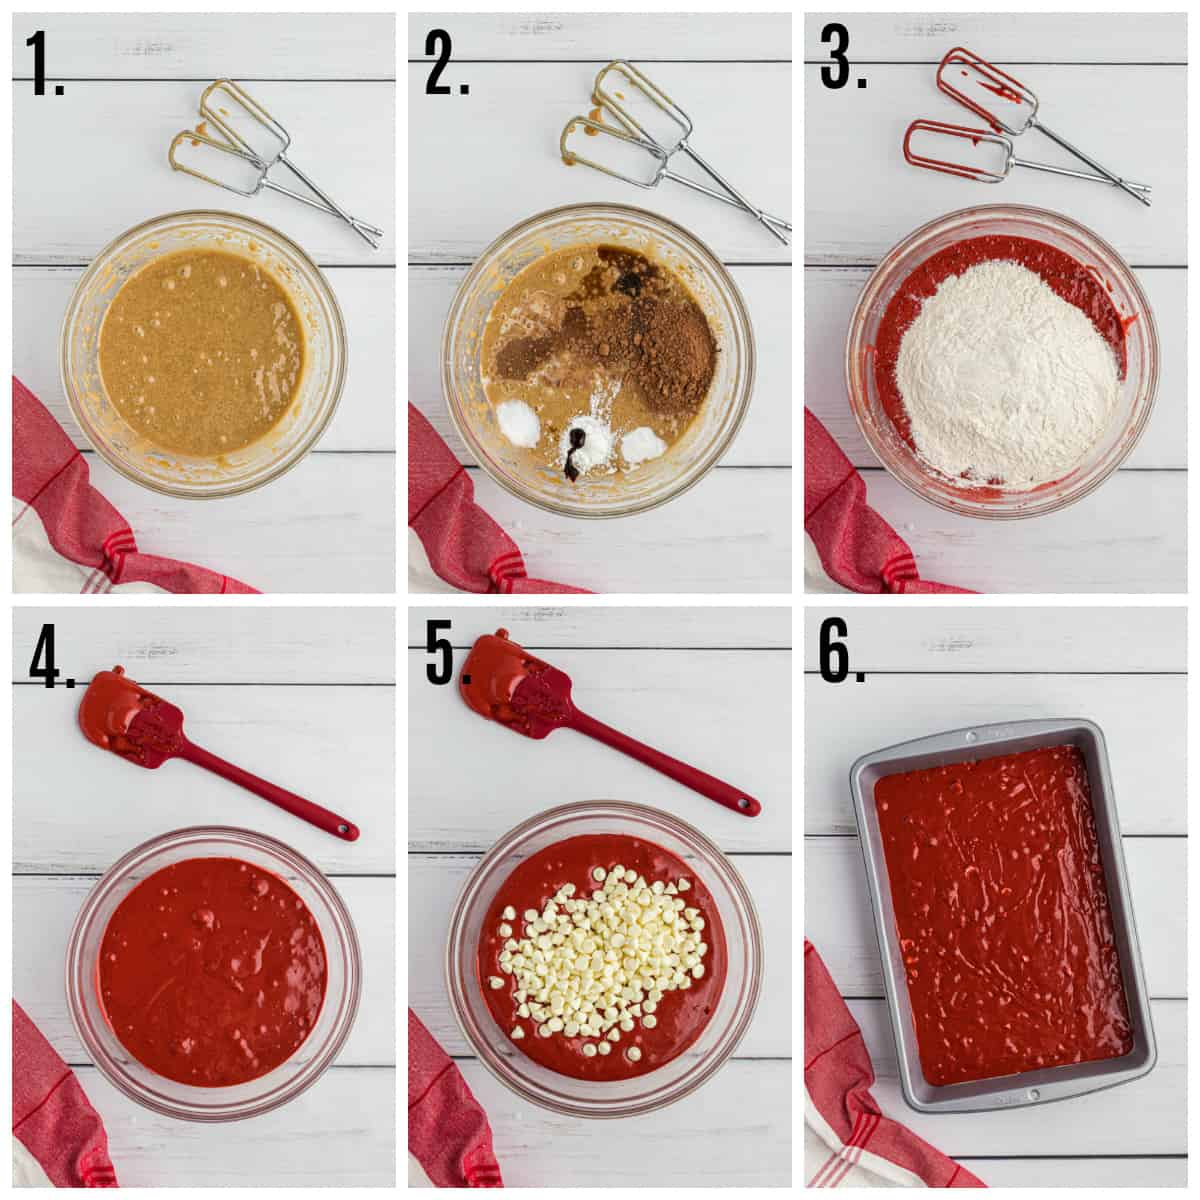 Step by step photos on how to make Red Velvet Brownies